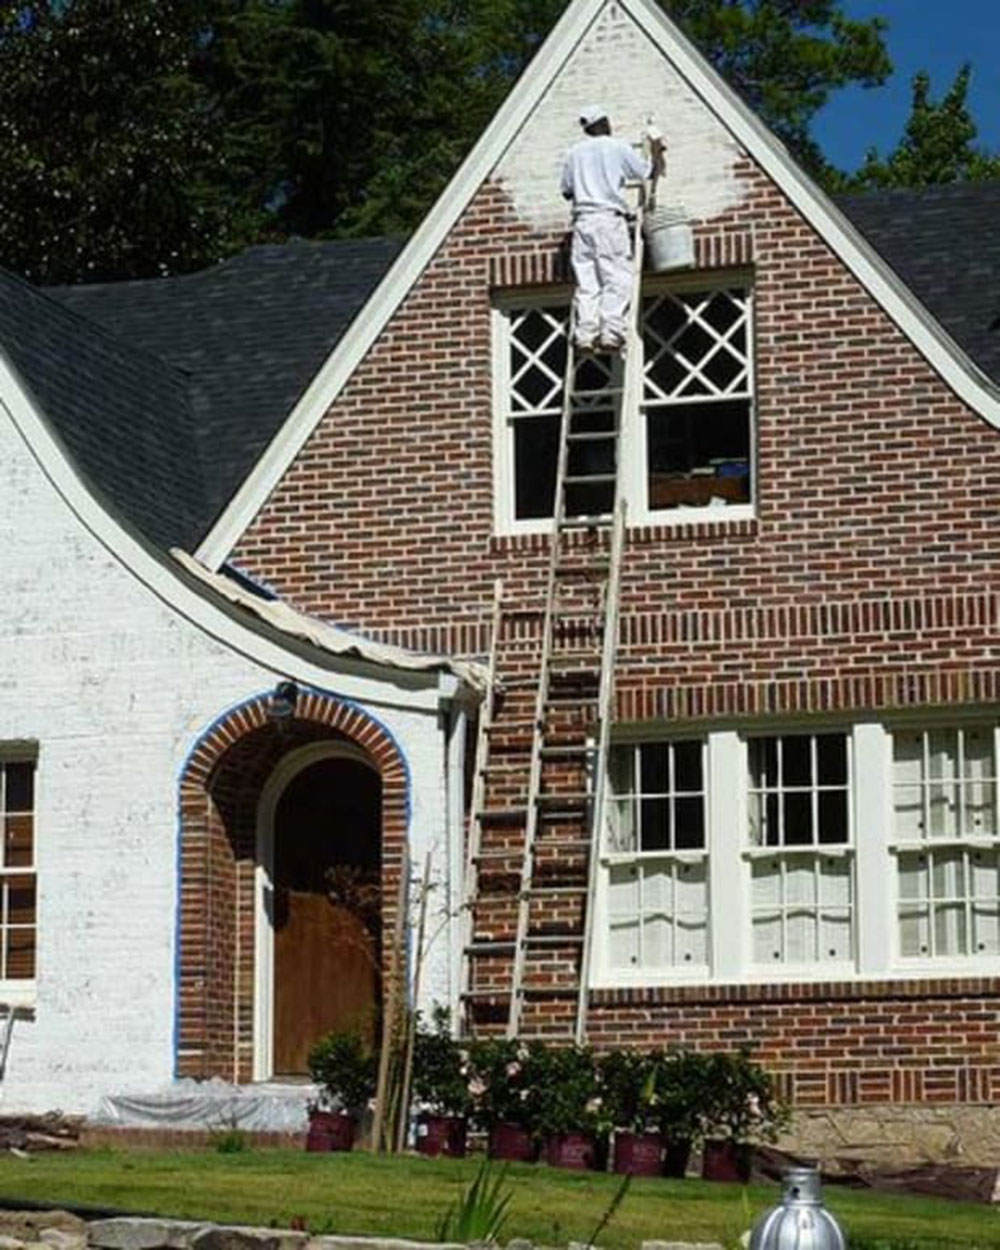 How To Whitewash Brick Exterior Tips And Tricks To Follow